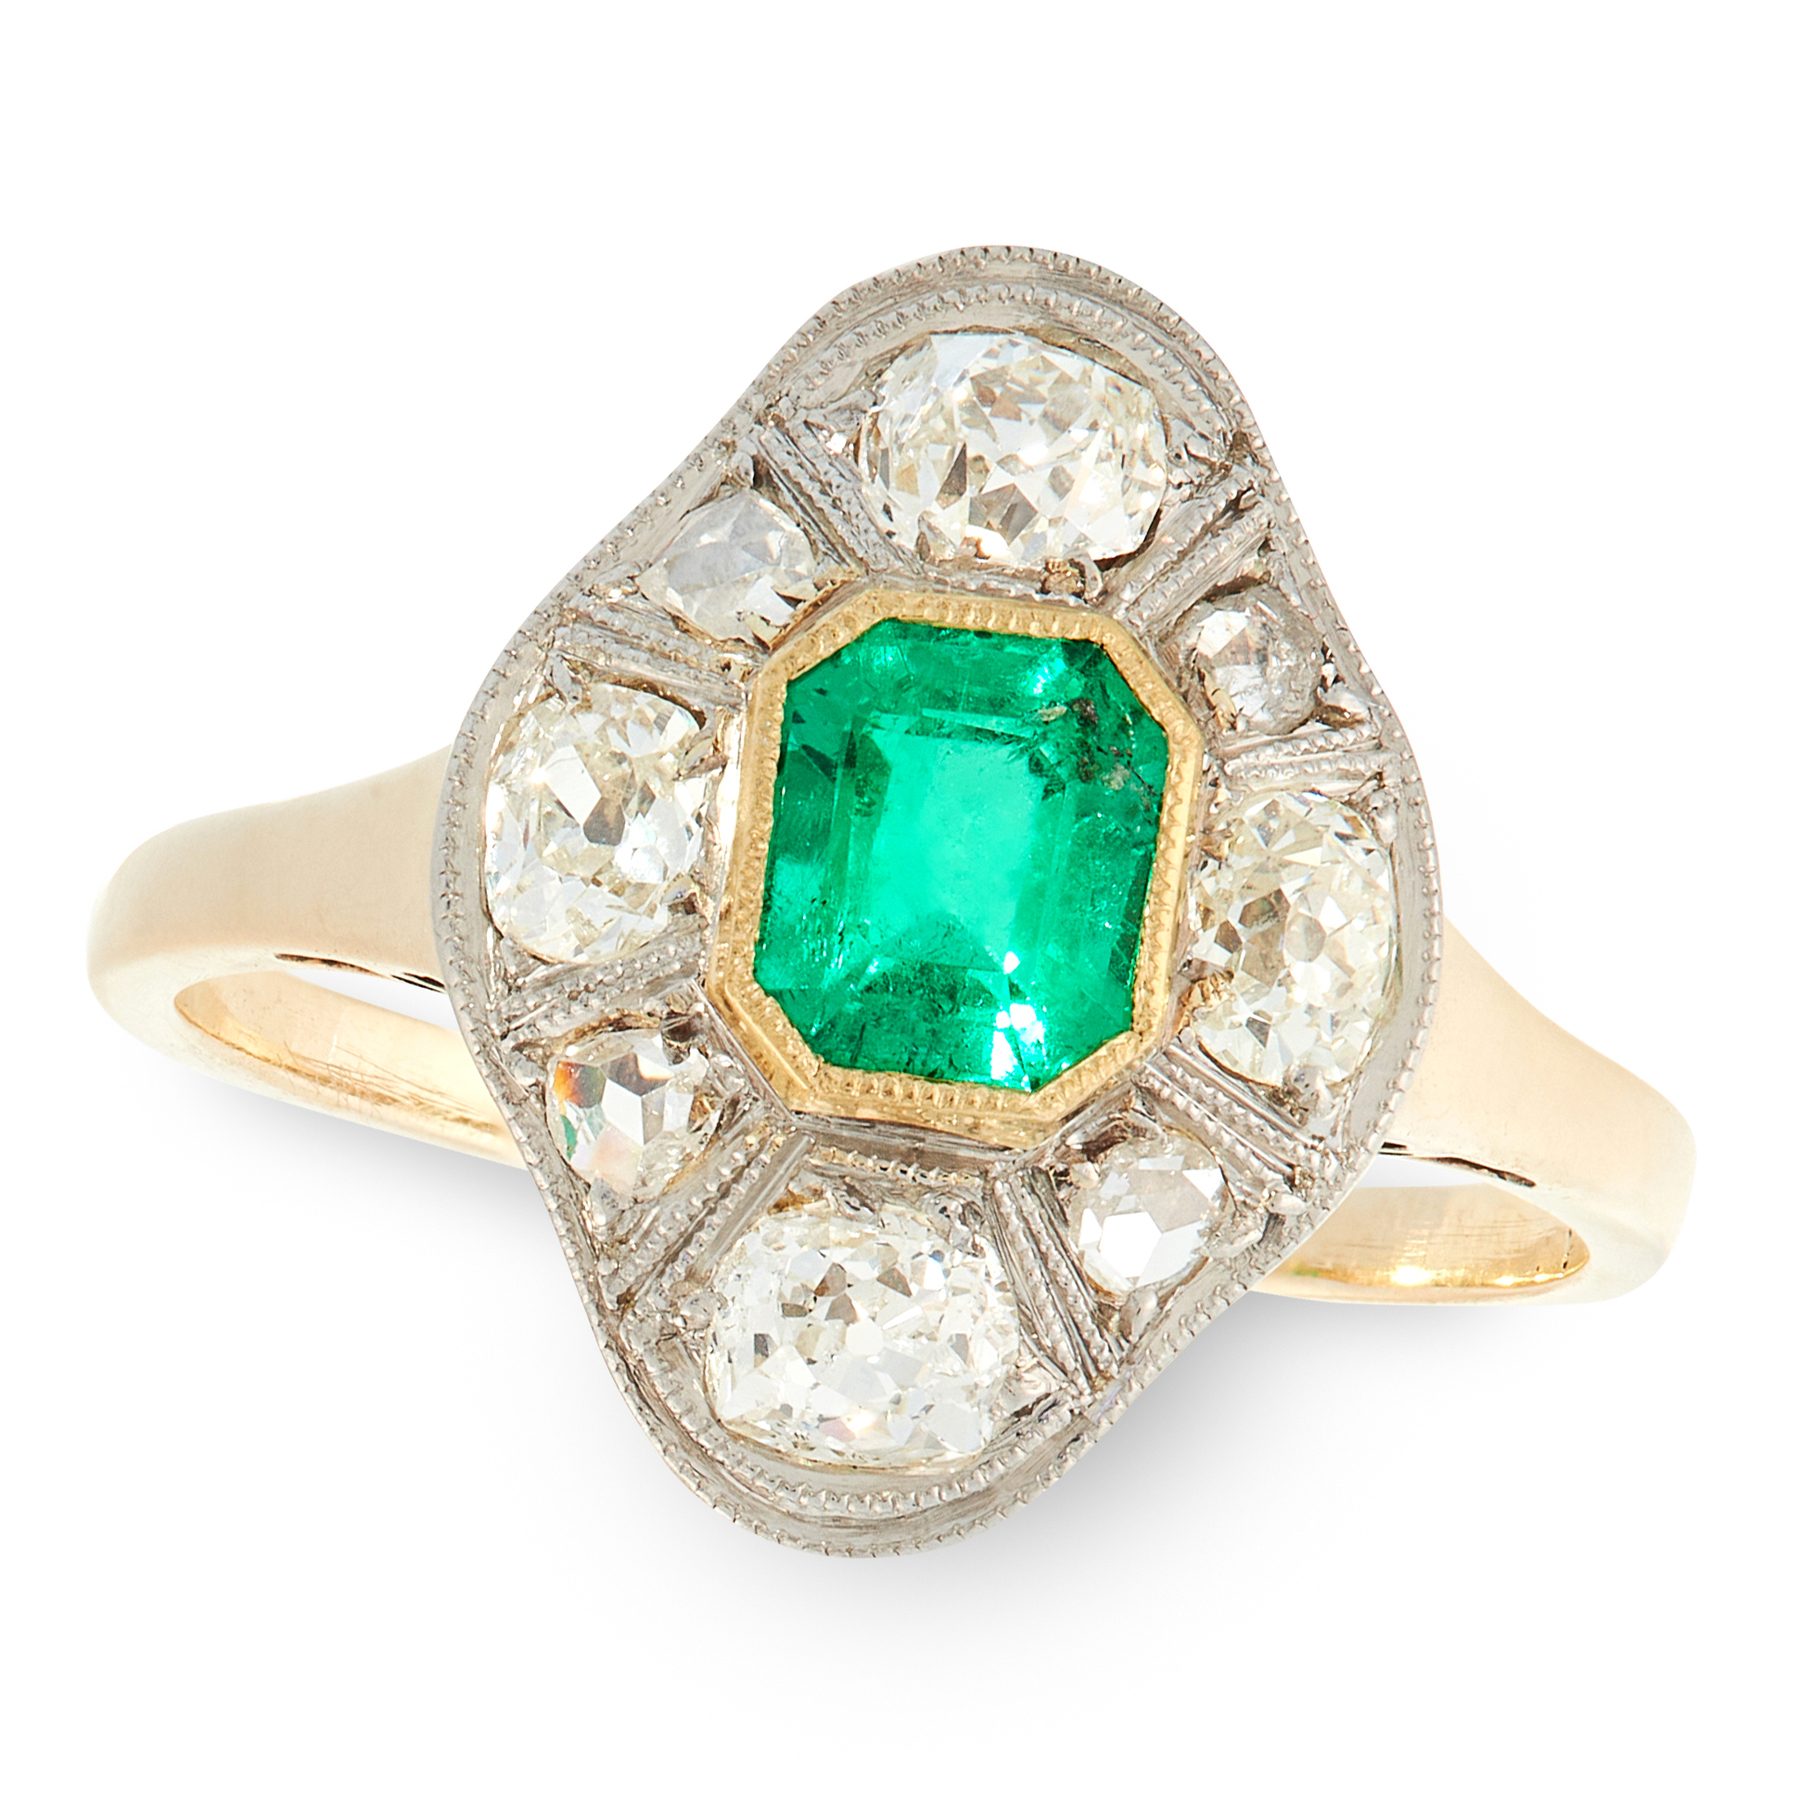 A COLOMBIAN EMERALD AND DIAMOND RING, CIRCA 1930 in 14ct yellow gold, set with an emerald cut